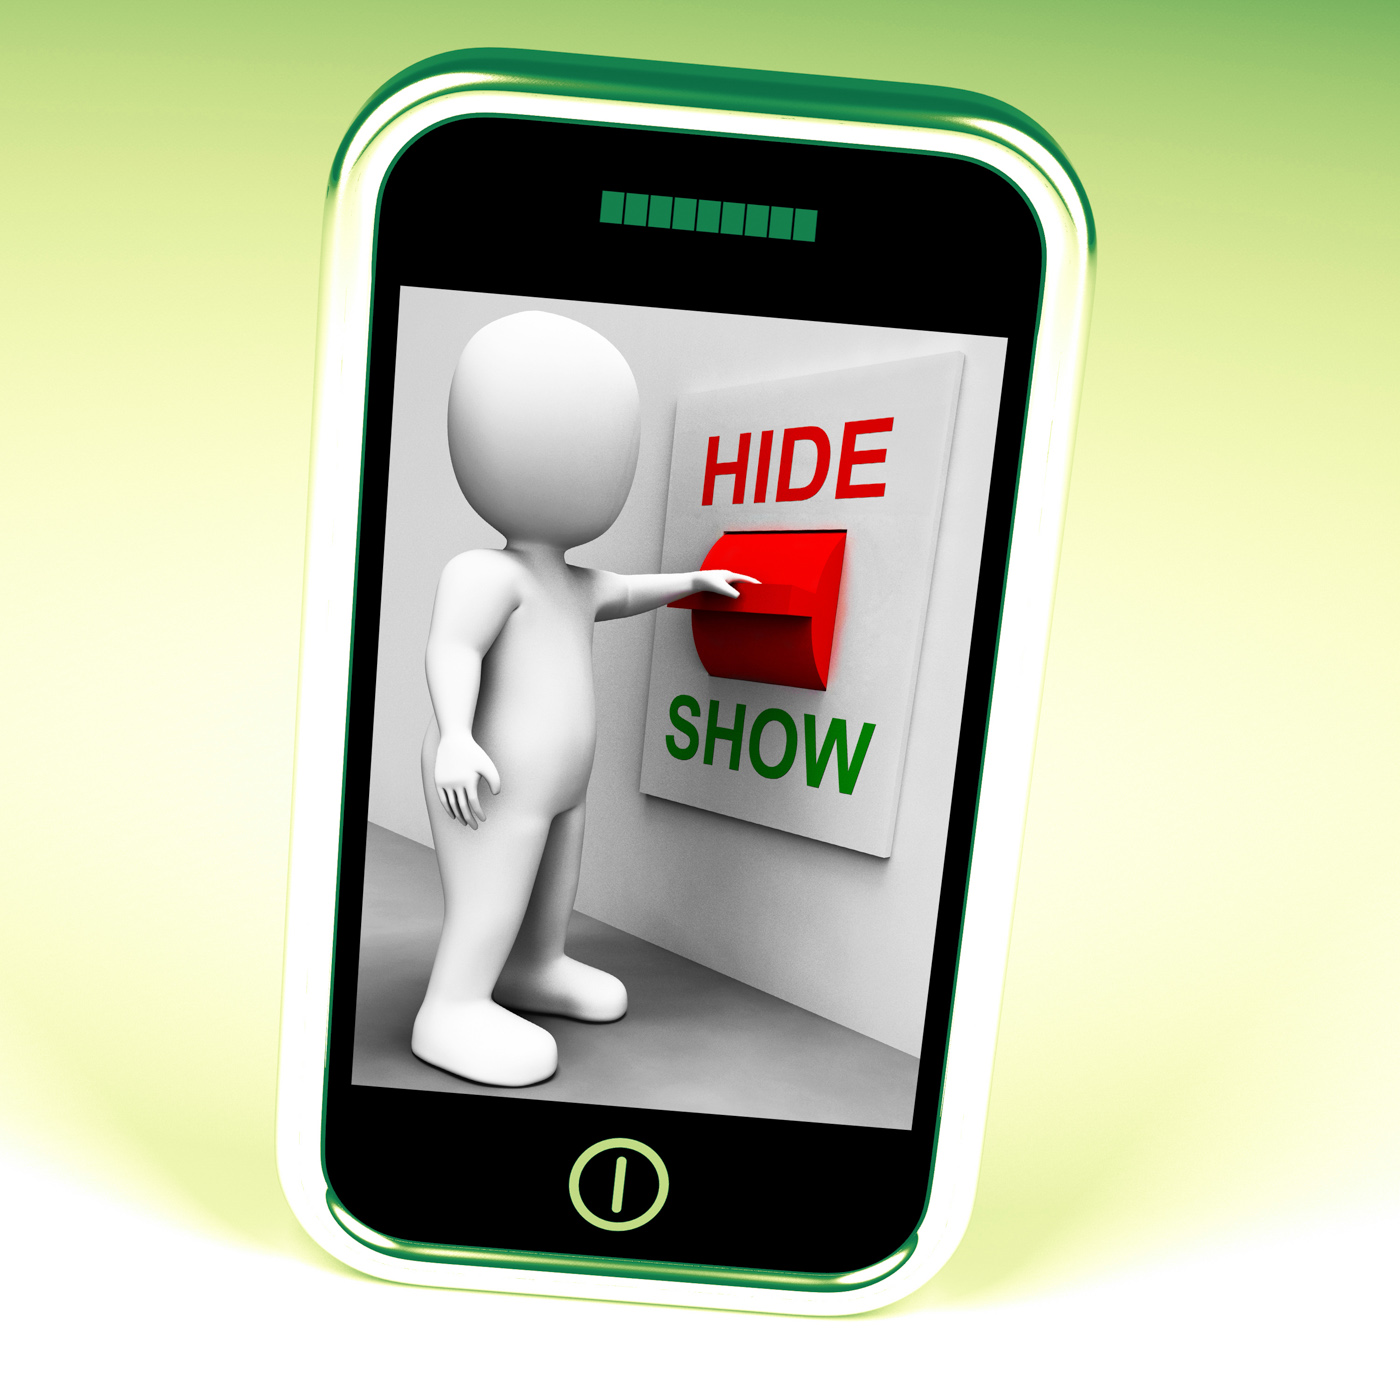 Show hide switch means conceal or reveal photo